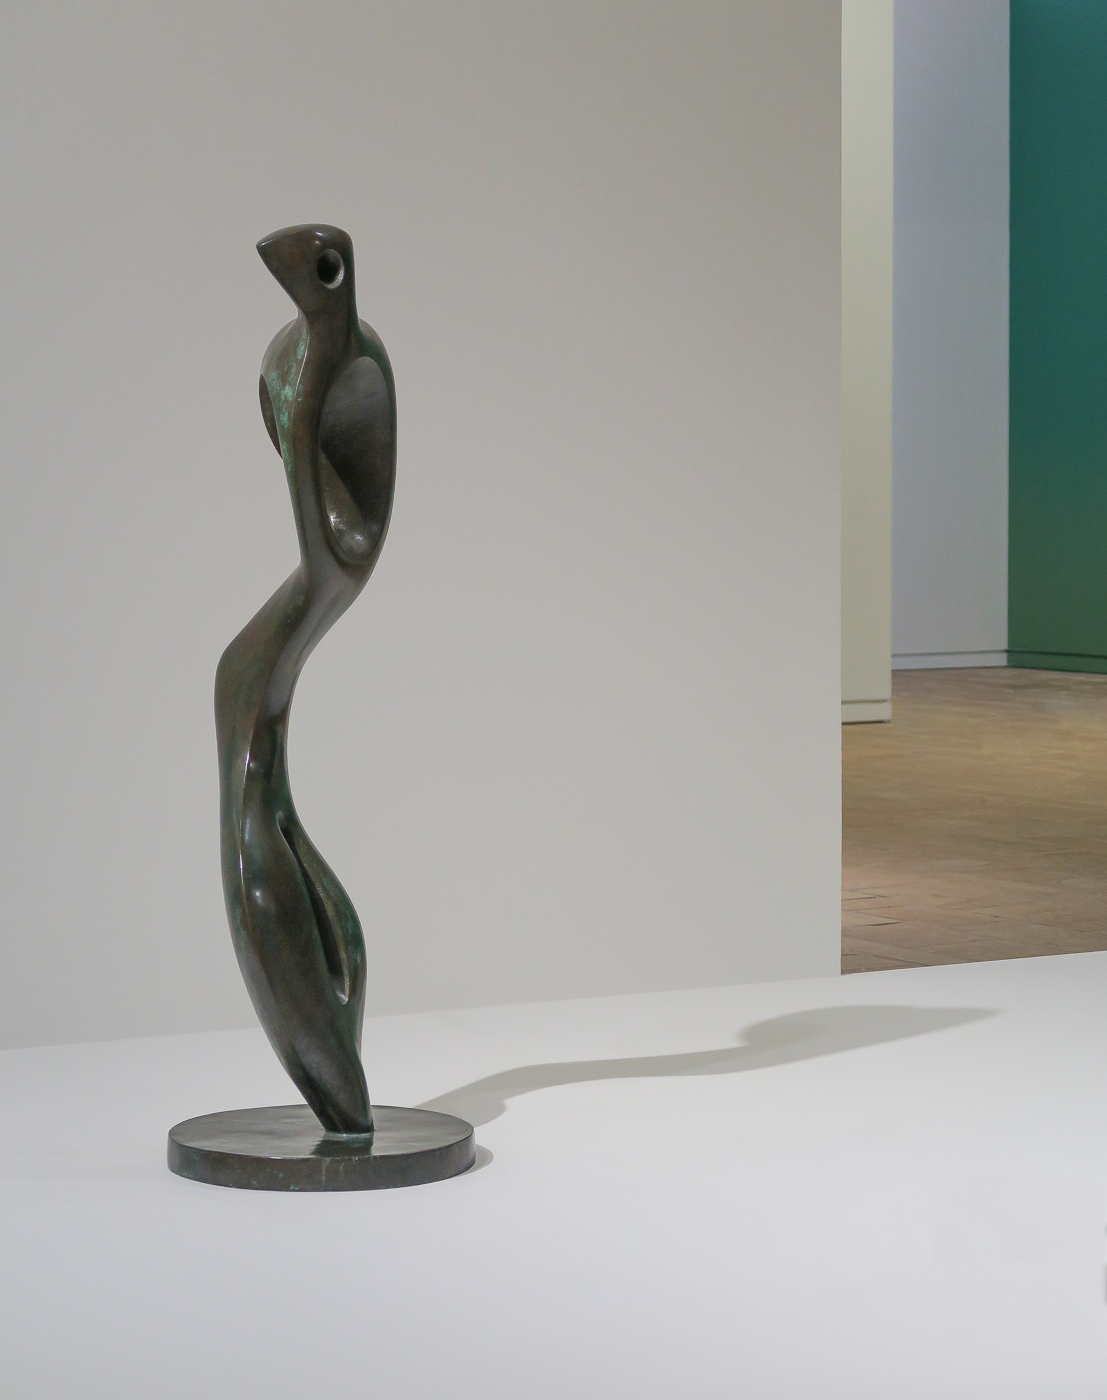 Henry Moore: Interior Form (1981)